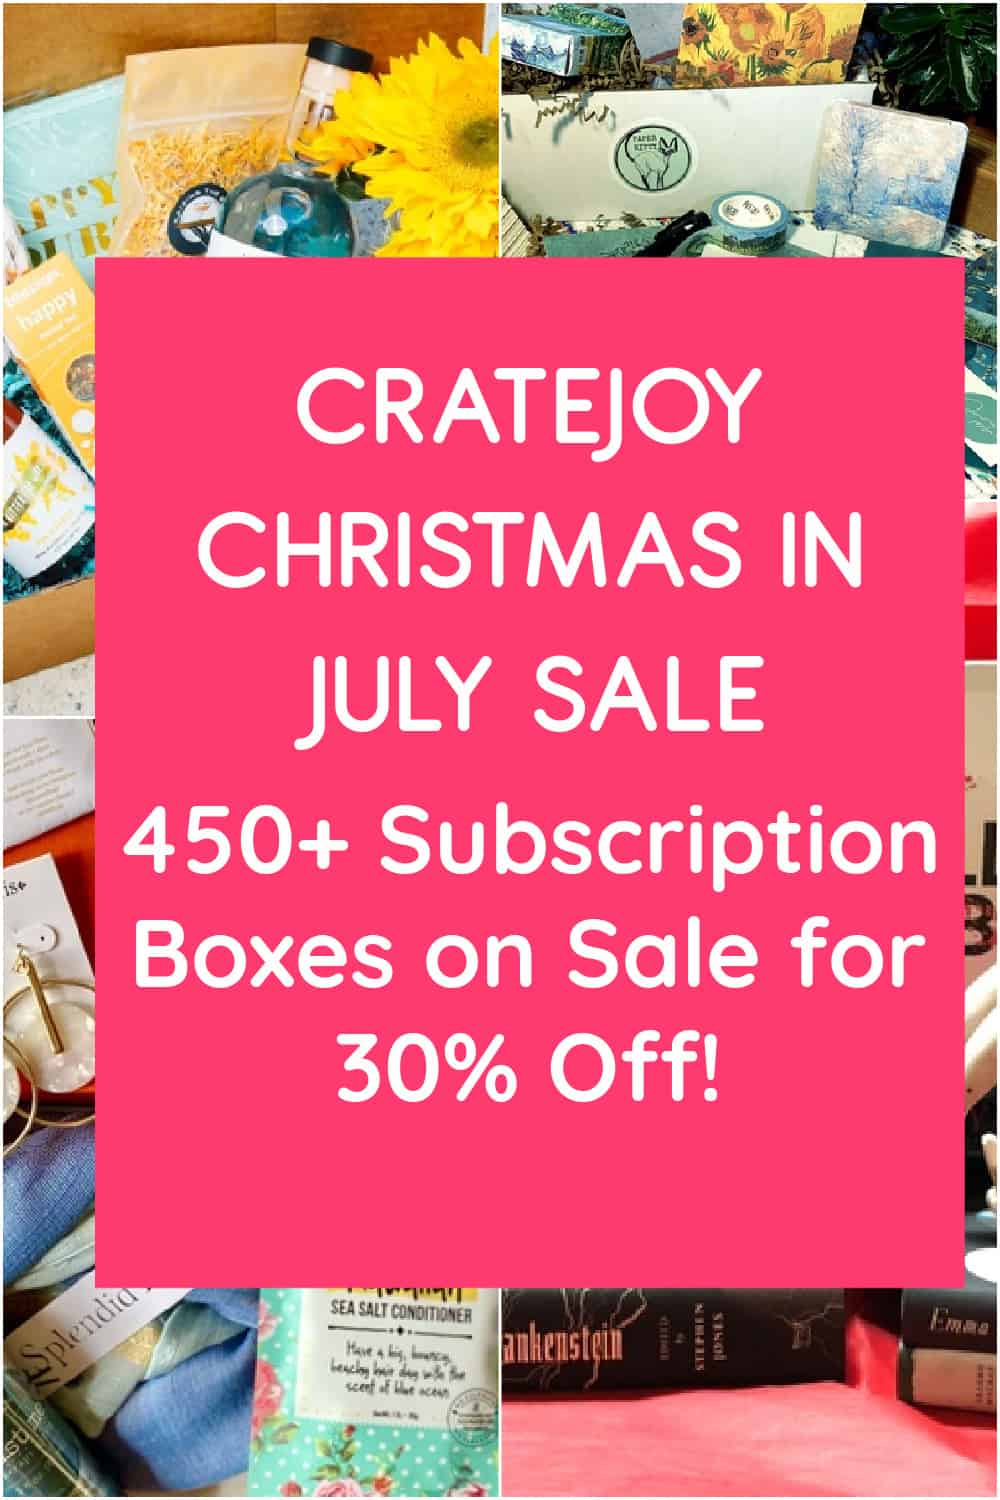 5 Deep-Discount Subscription Boxes to Try During the Cratejoy Christmas in July Sale